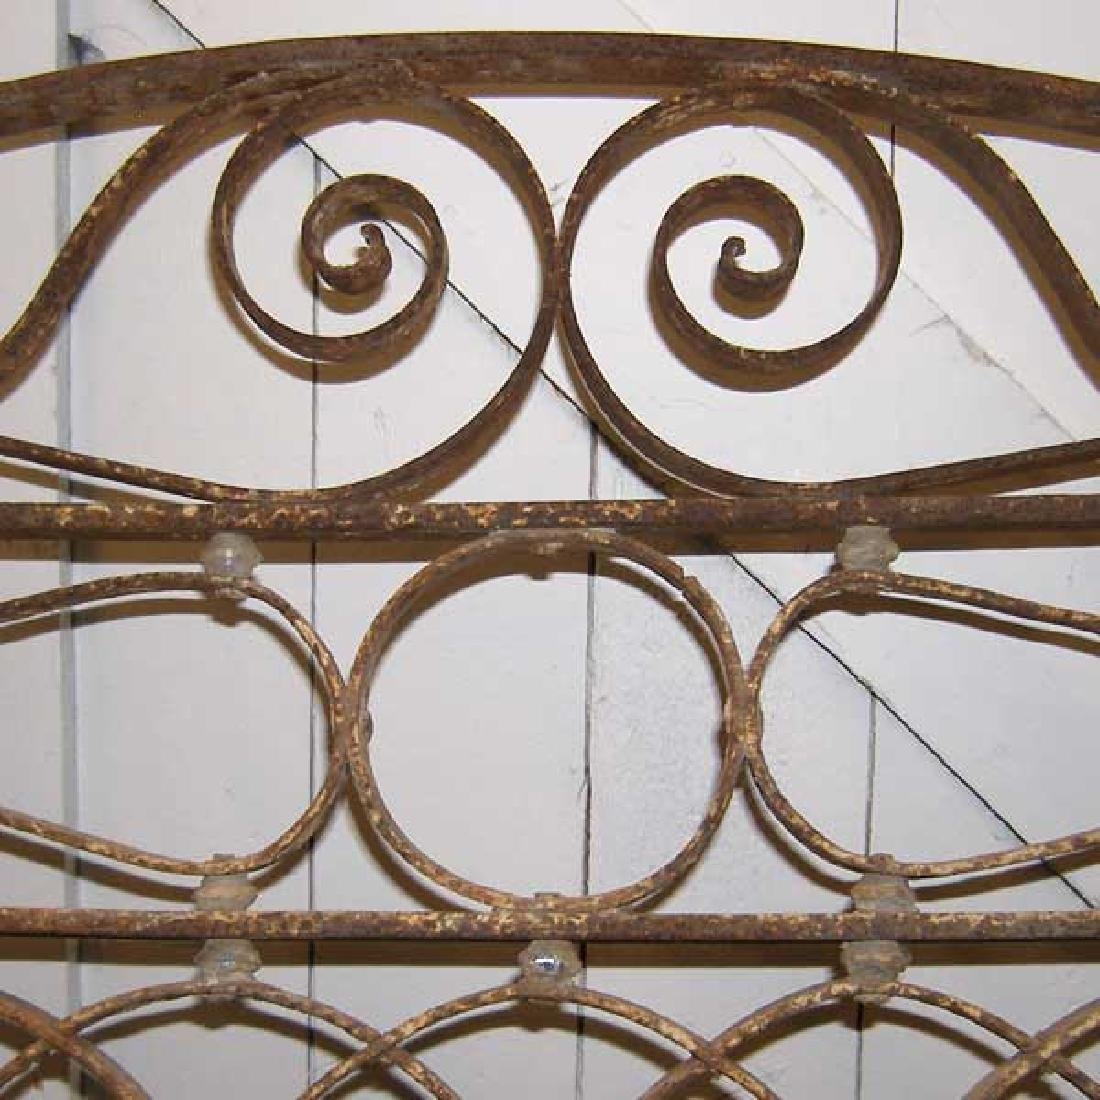 French Wrought Iron & Zinc Arched Transom Grille - 4